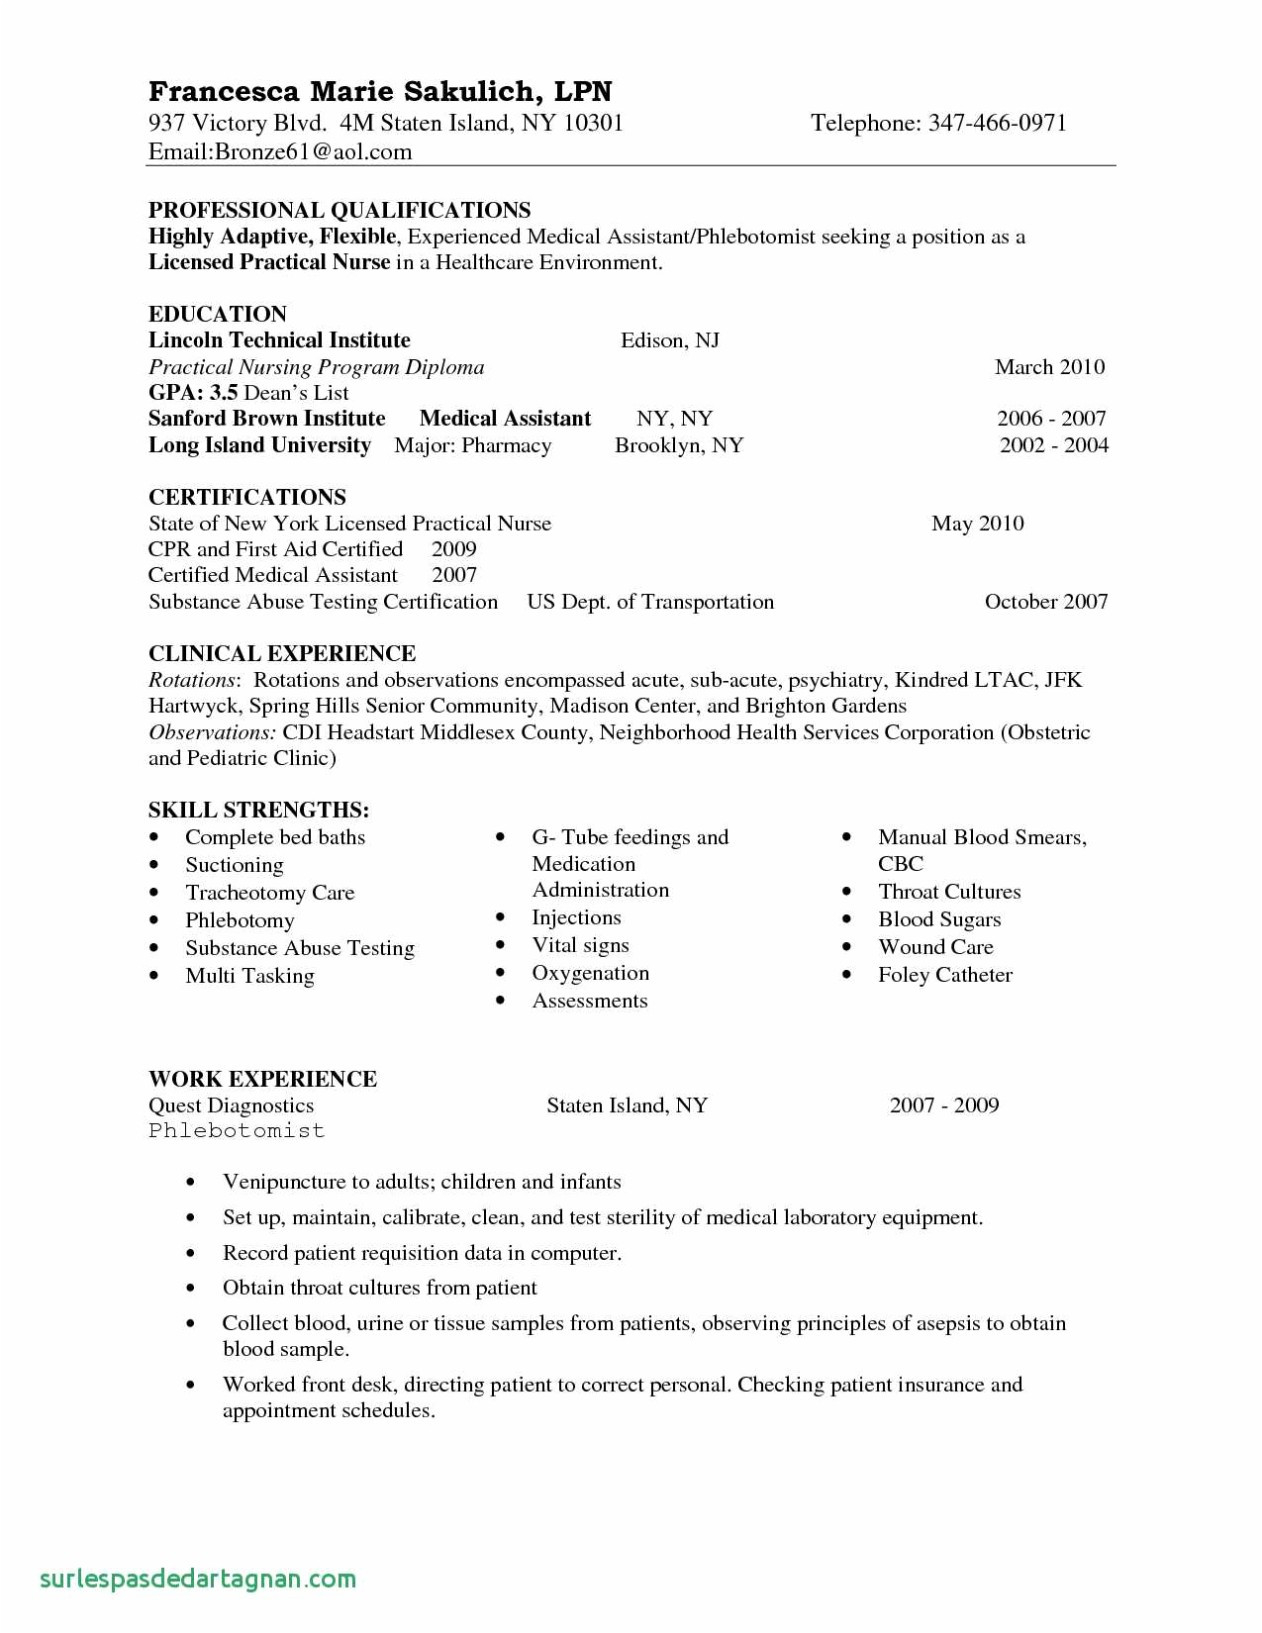 new grad nurse resume template Collection-Awesome New Grad Nursing Resume Template 17-c